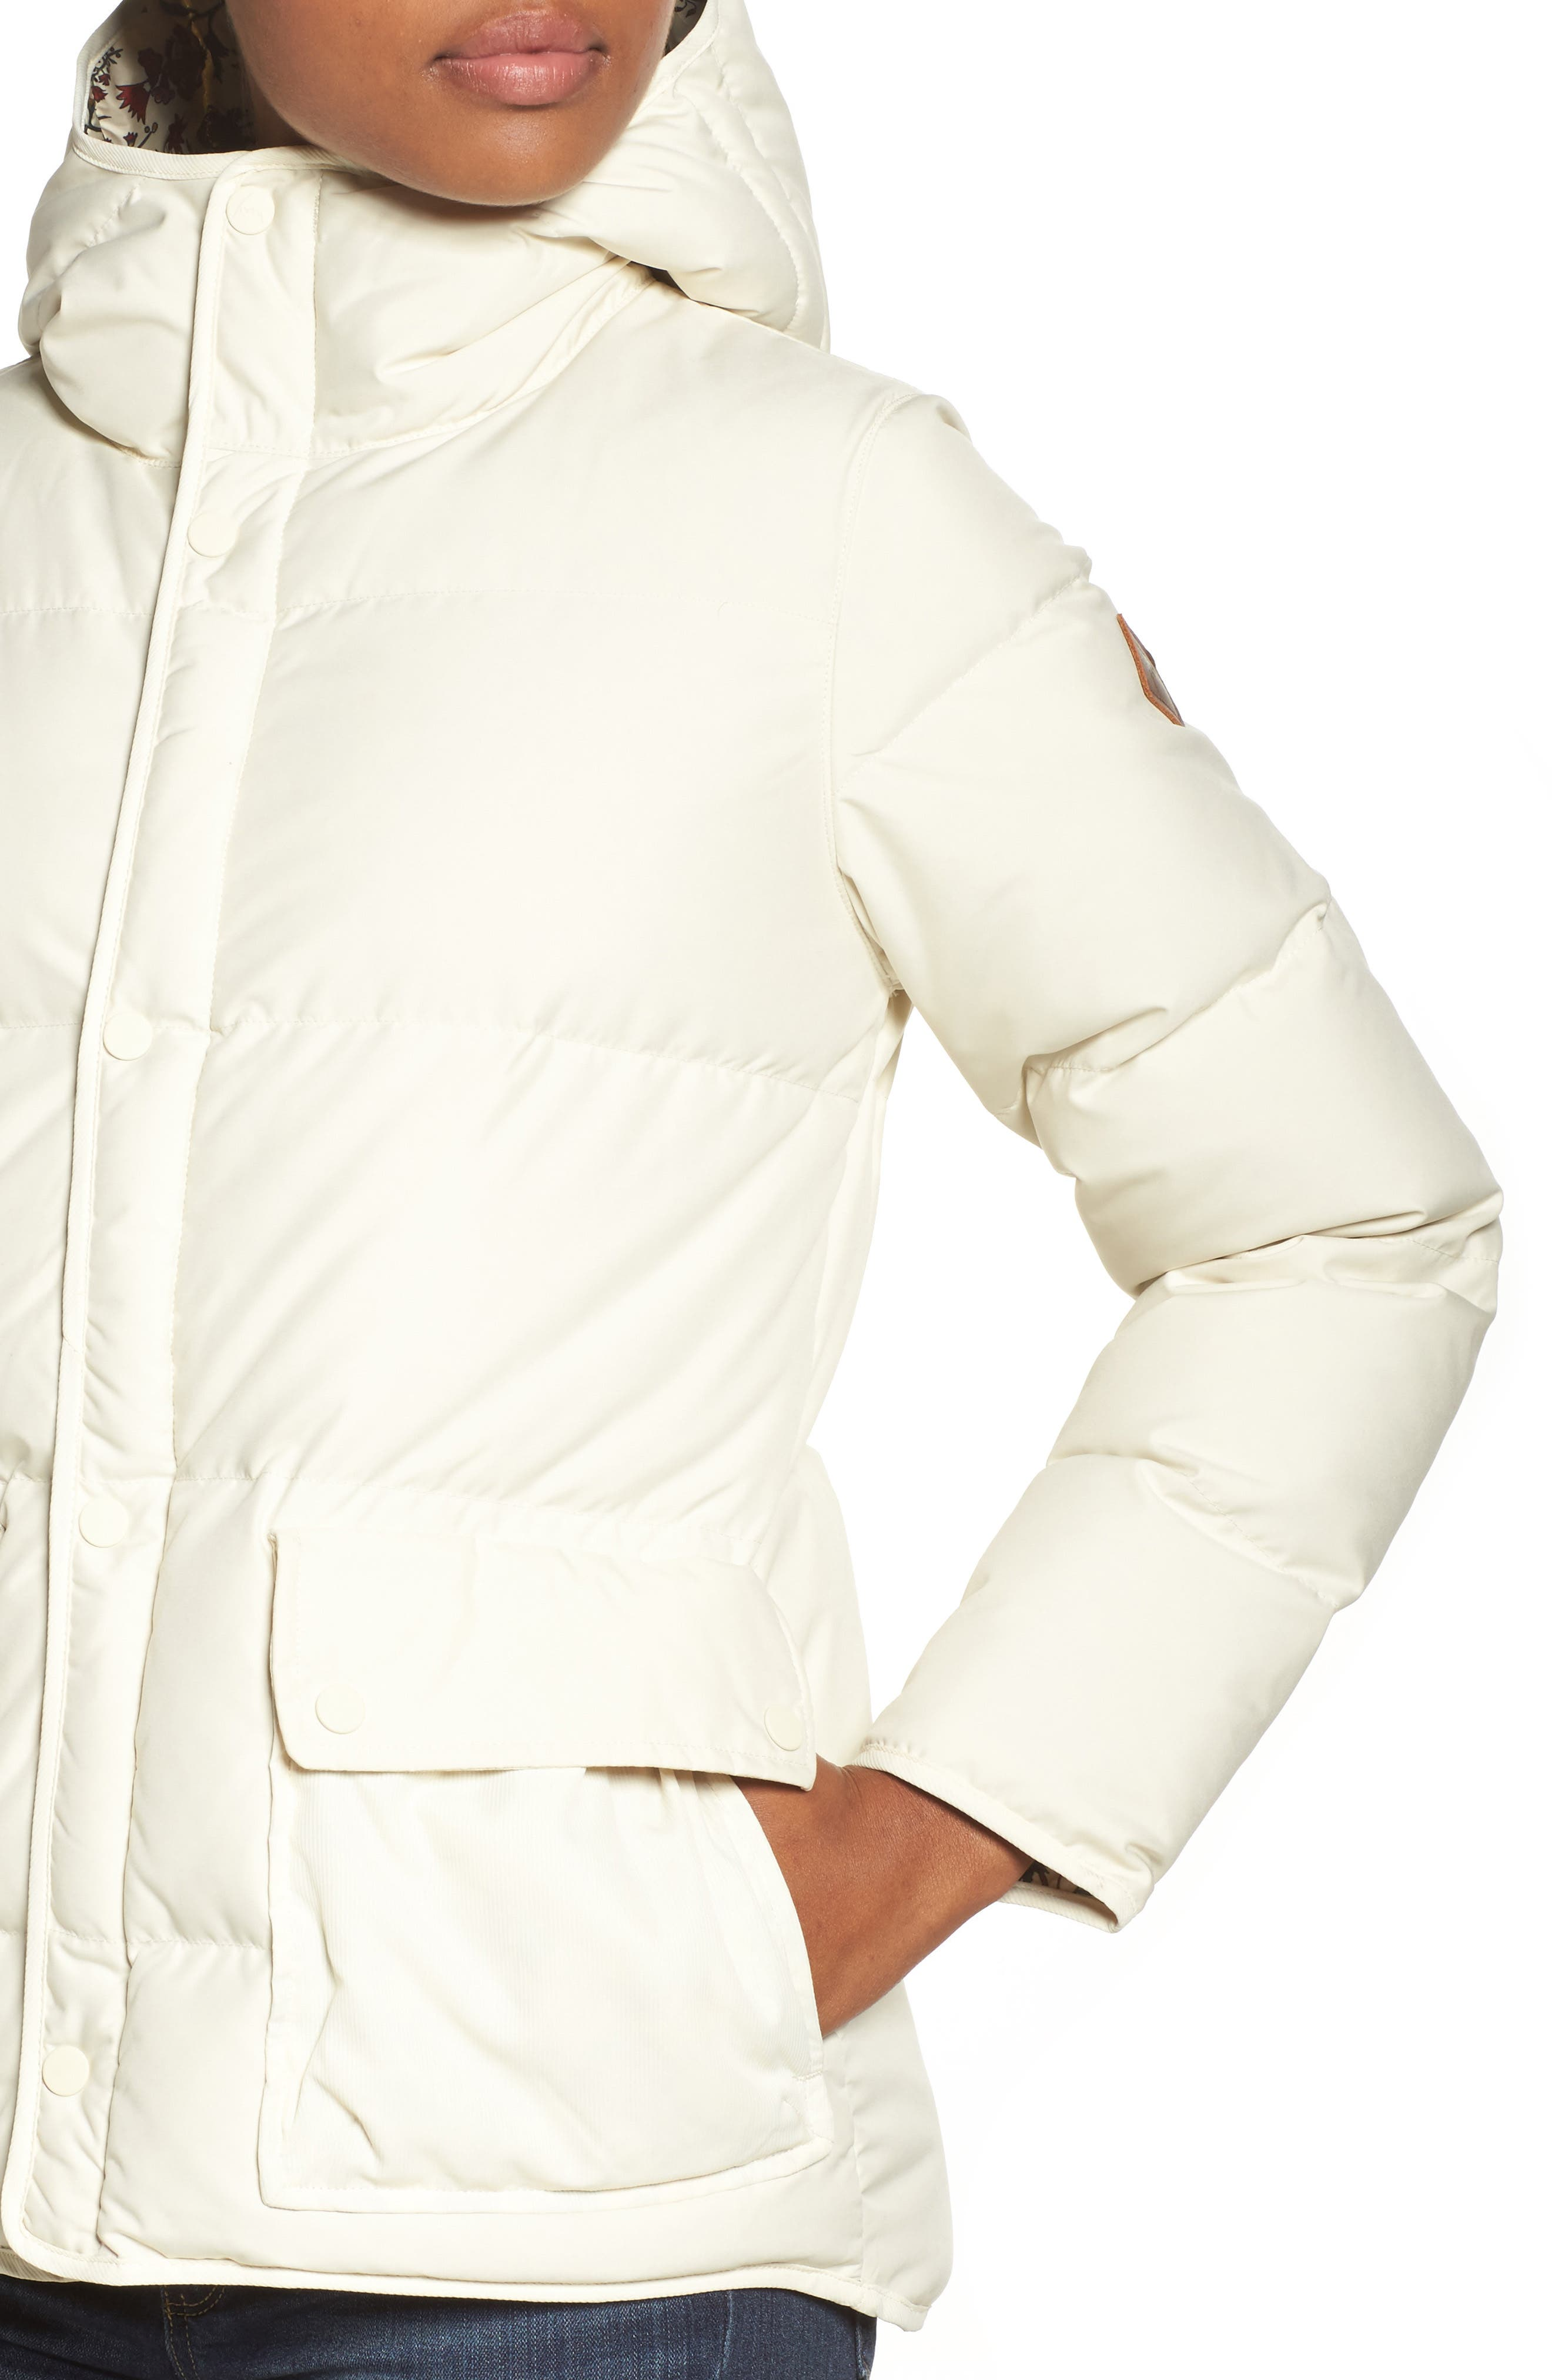 Mage Insulator Hooded Jacket,                             Alternate thumbnail 4, color,                             250